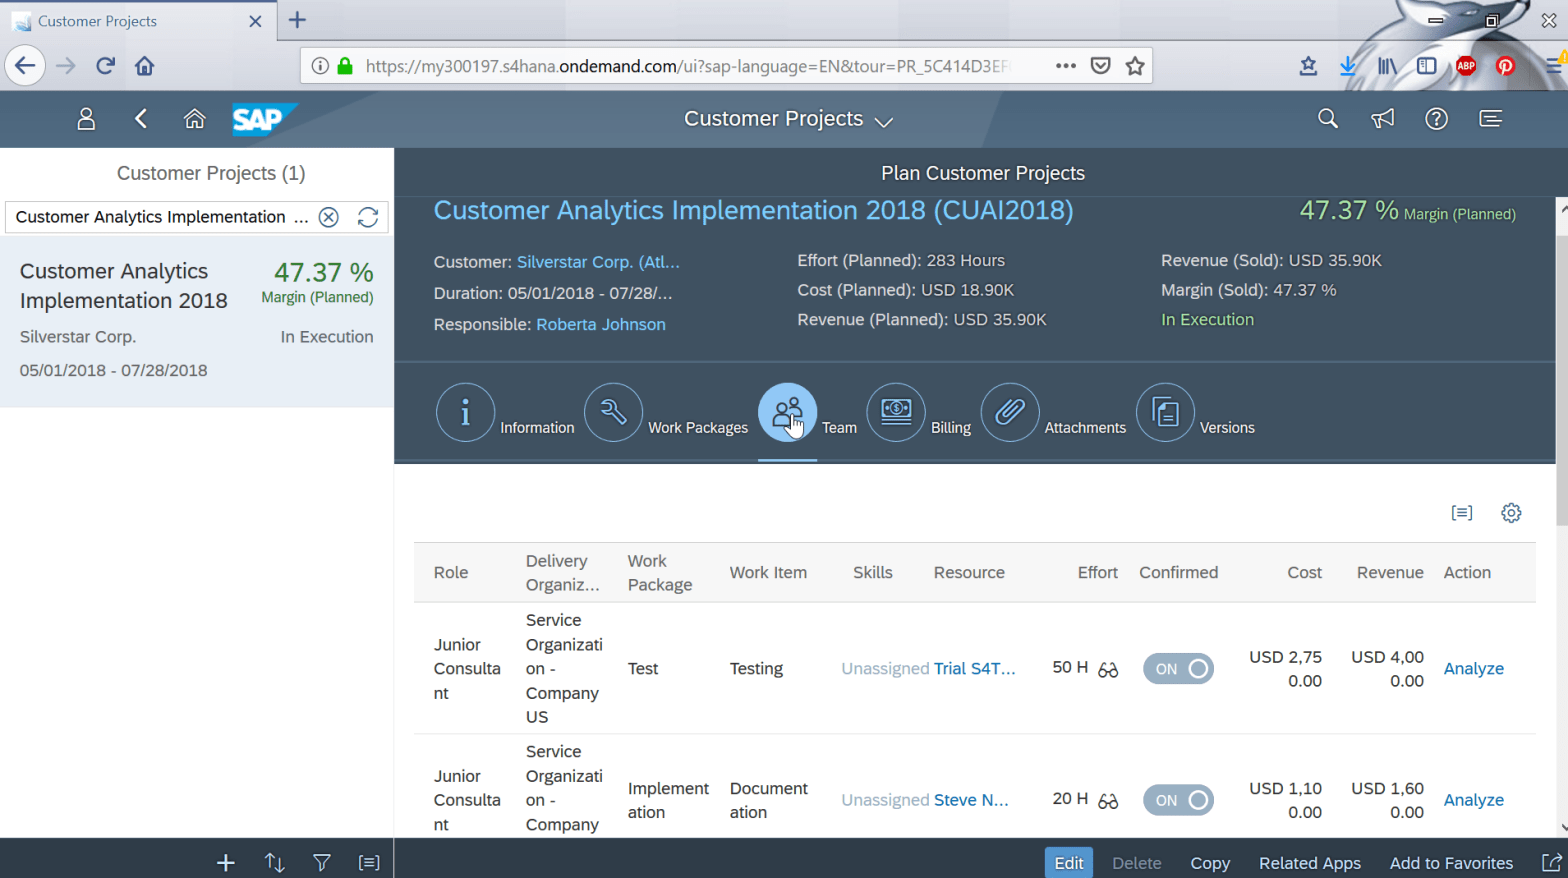 How to analyze a customer project in SAP Cloud?